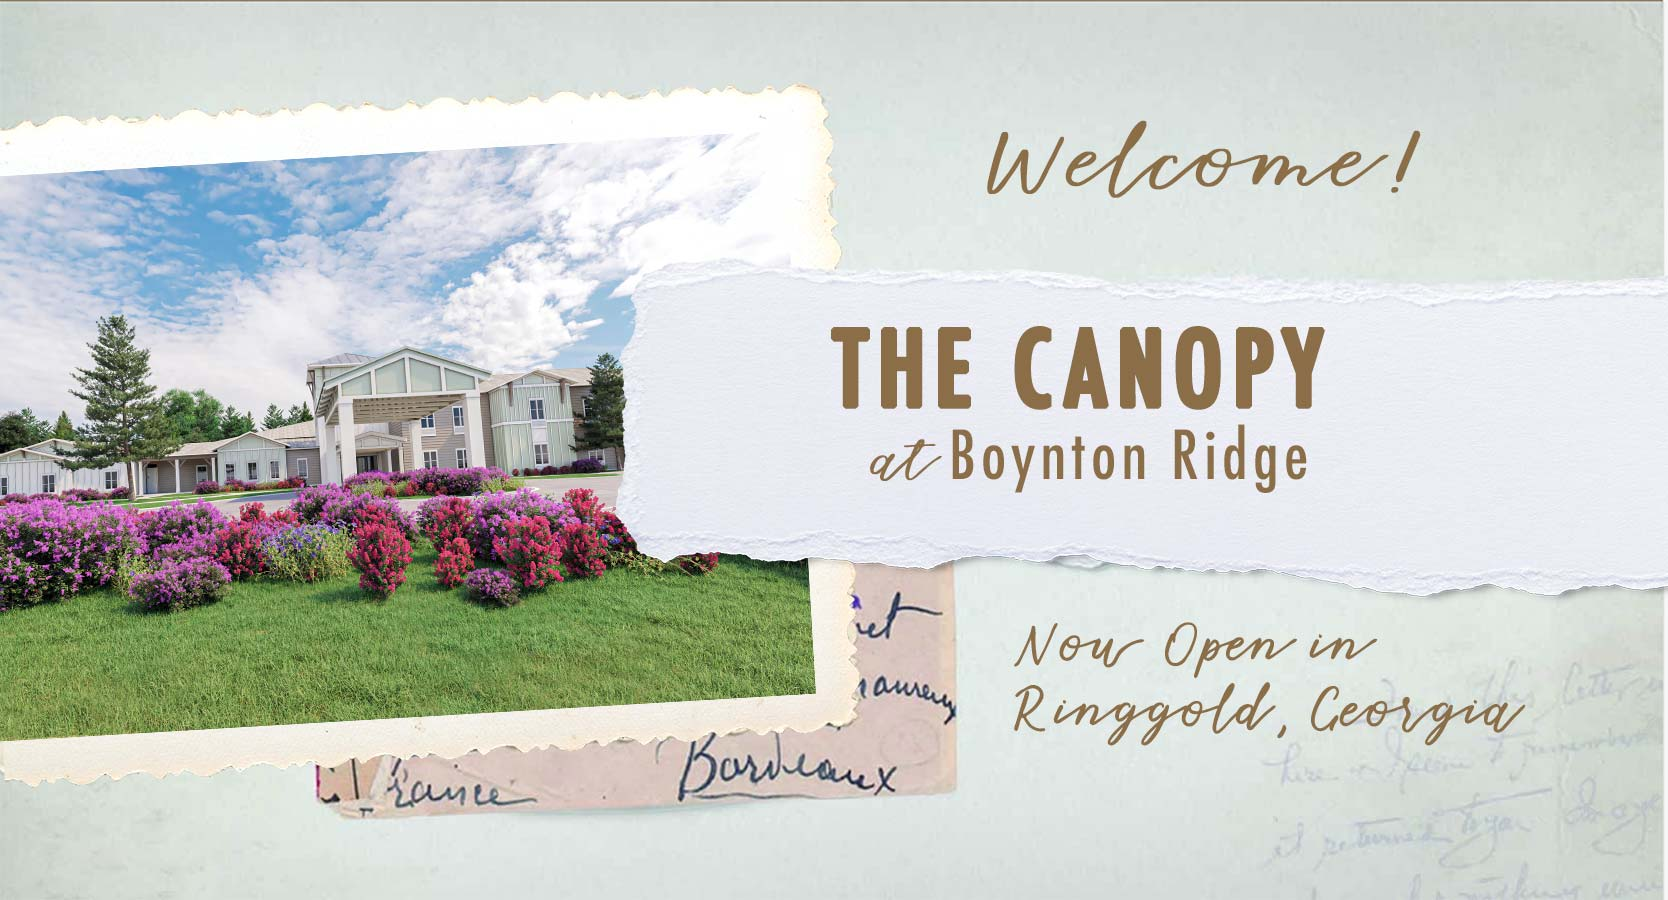 Welcome to The Canopy at Boynton Ridge, an assisted living and memory care community now open in Ringgold Georgia